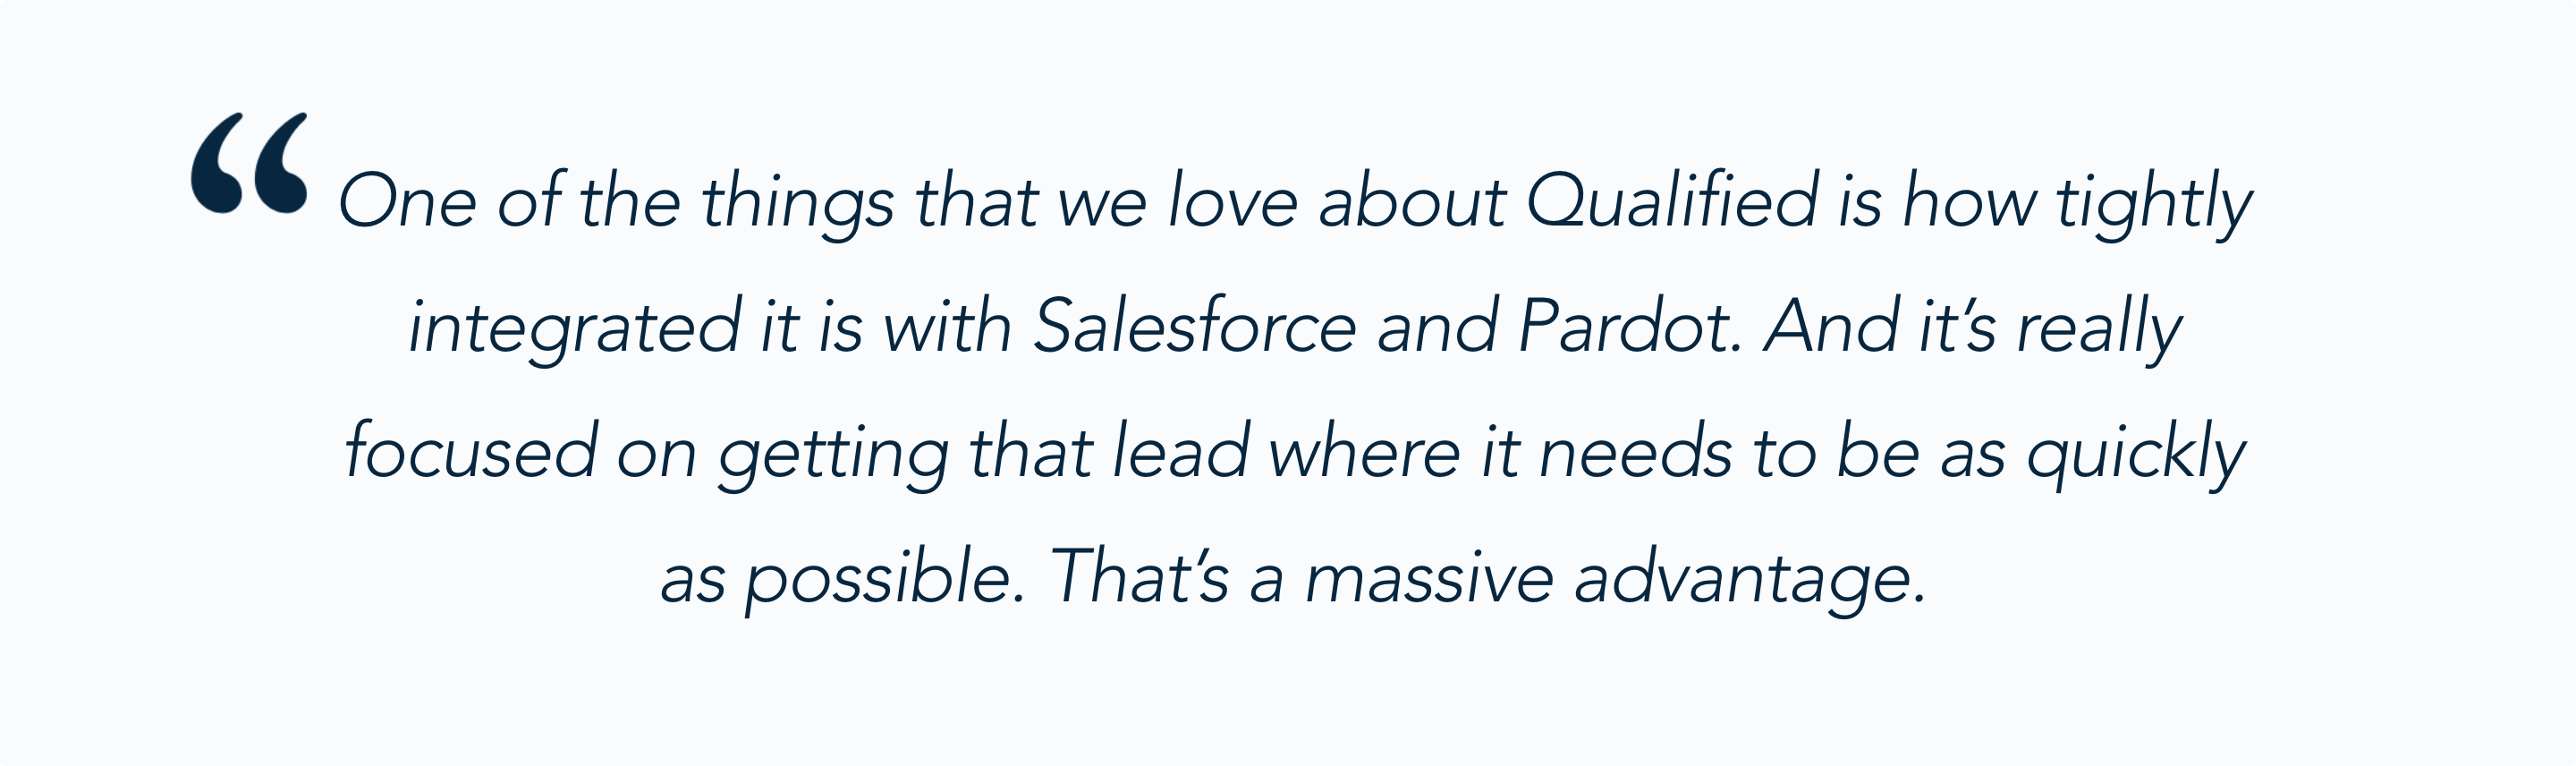 Andrea Tarrell on Qualified for Salesforce Pardot